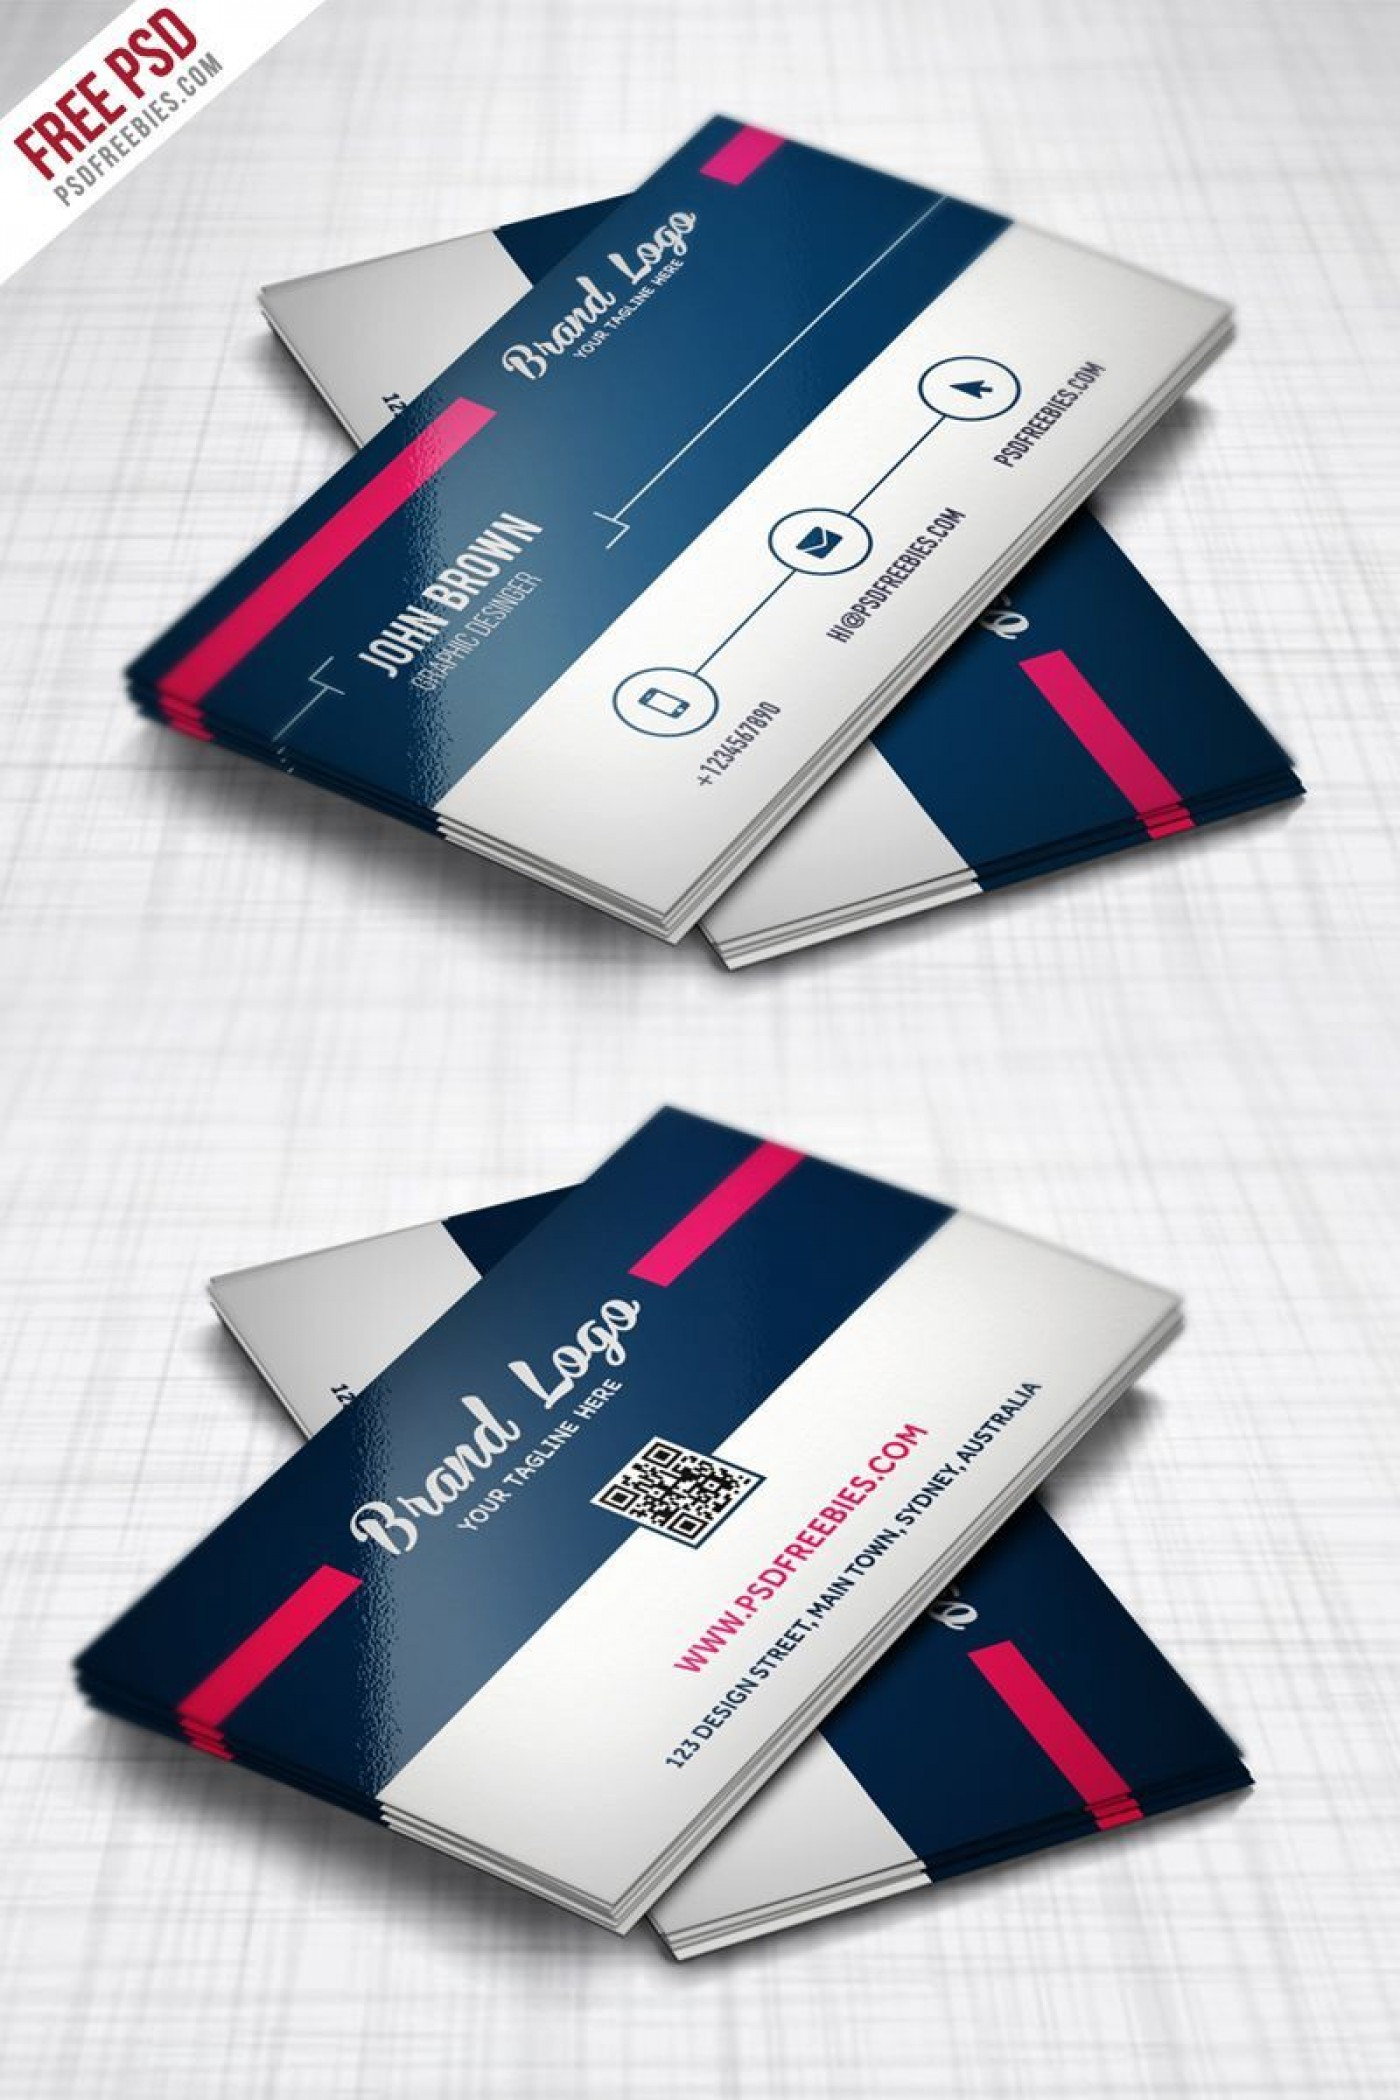 007 Exceptional Free Adobe Photoshop Busines Card Template Idea  Download1400